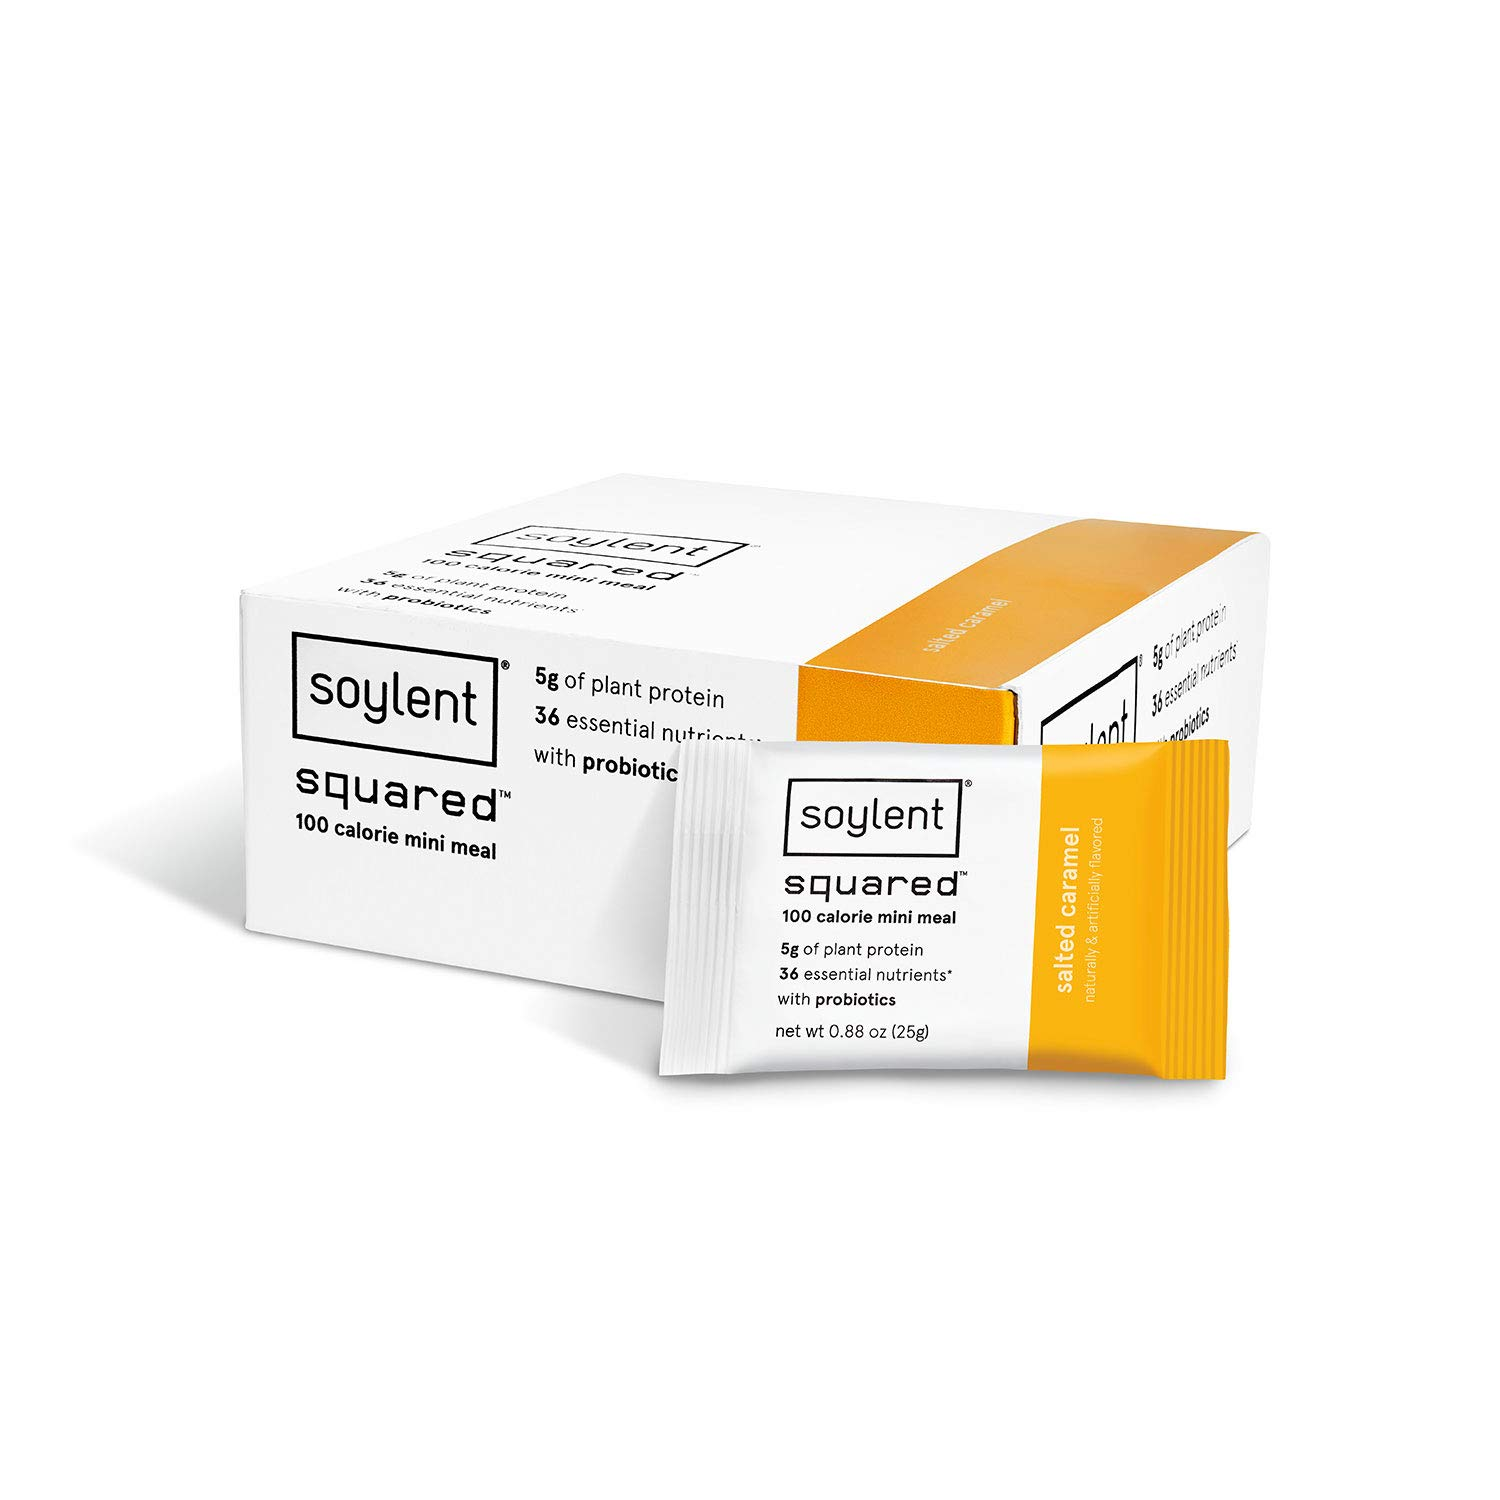 NEW Soylent Squared, 100-Calorie Protein Bar, Salted Caramel, 30 Count by Soylent